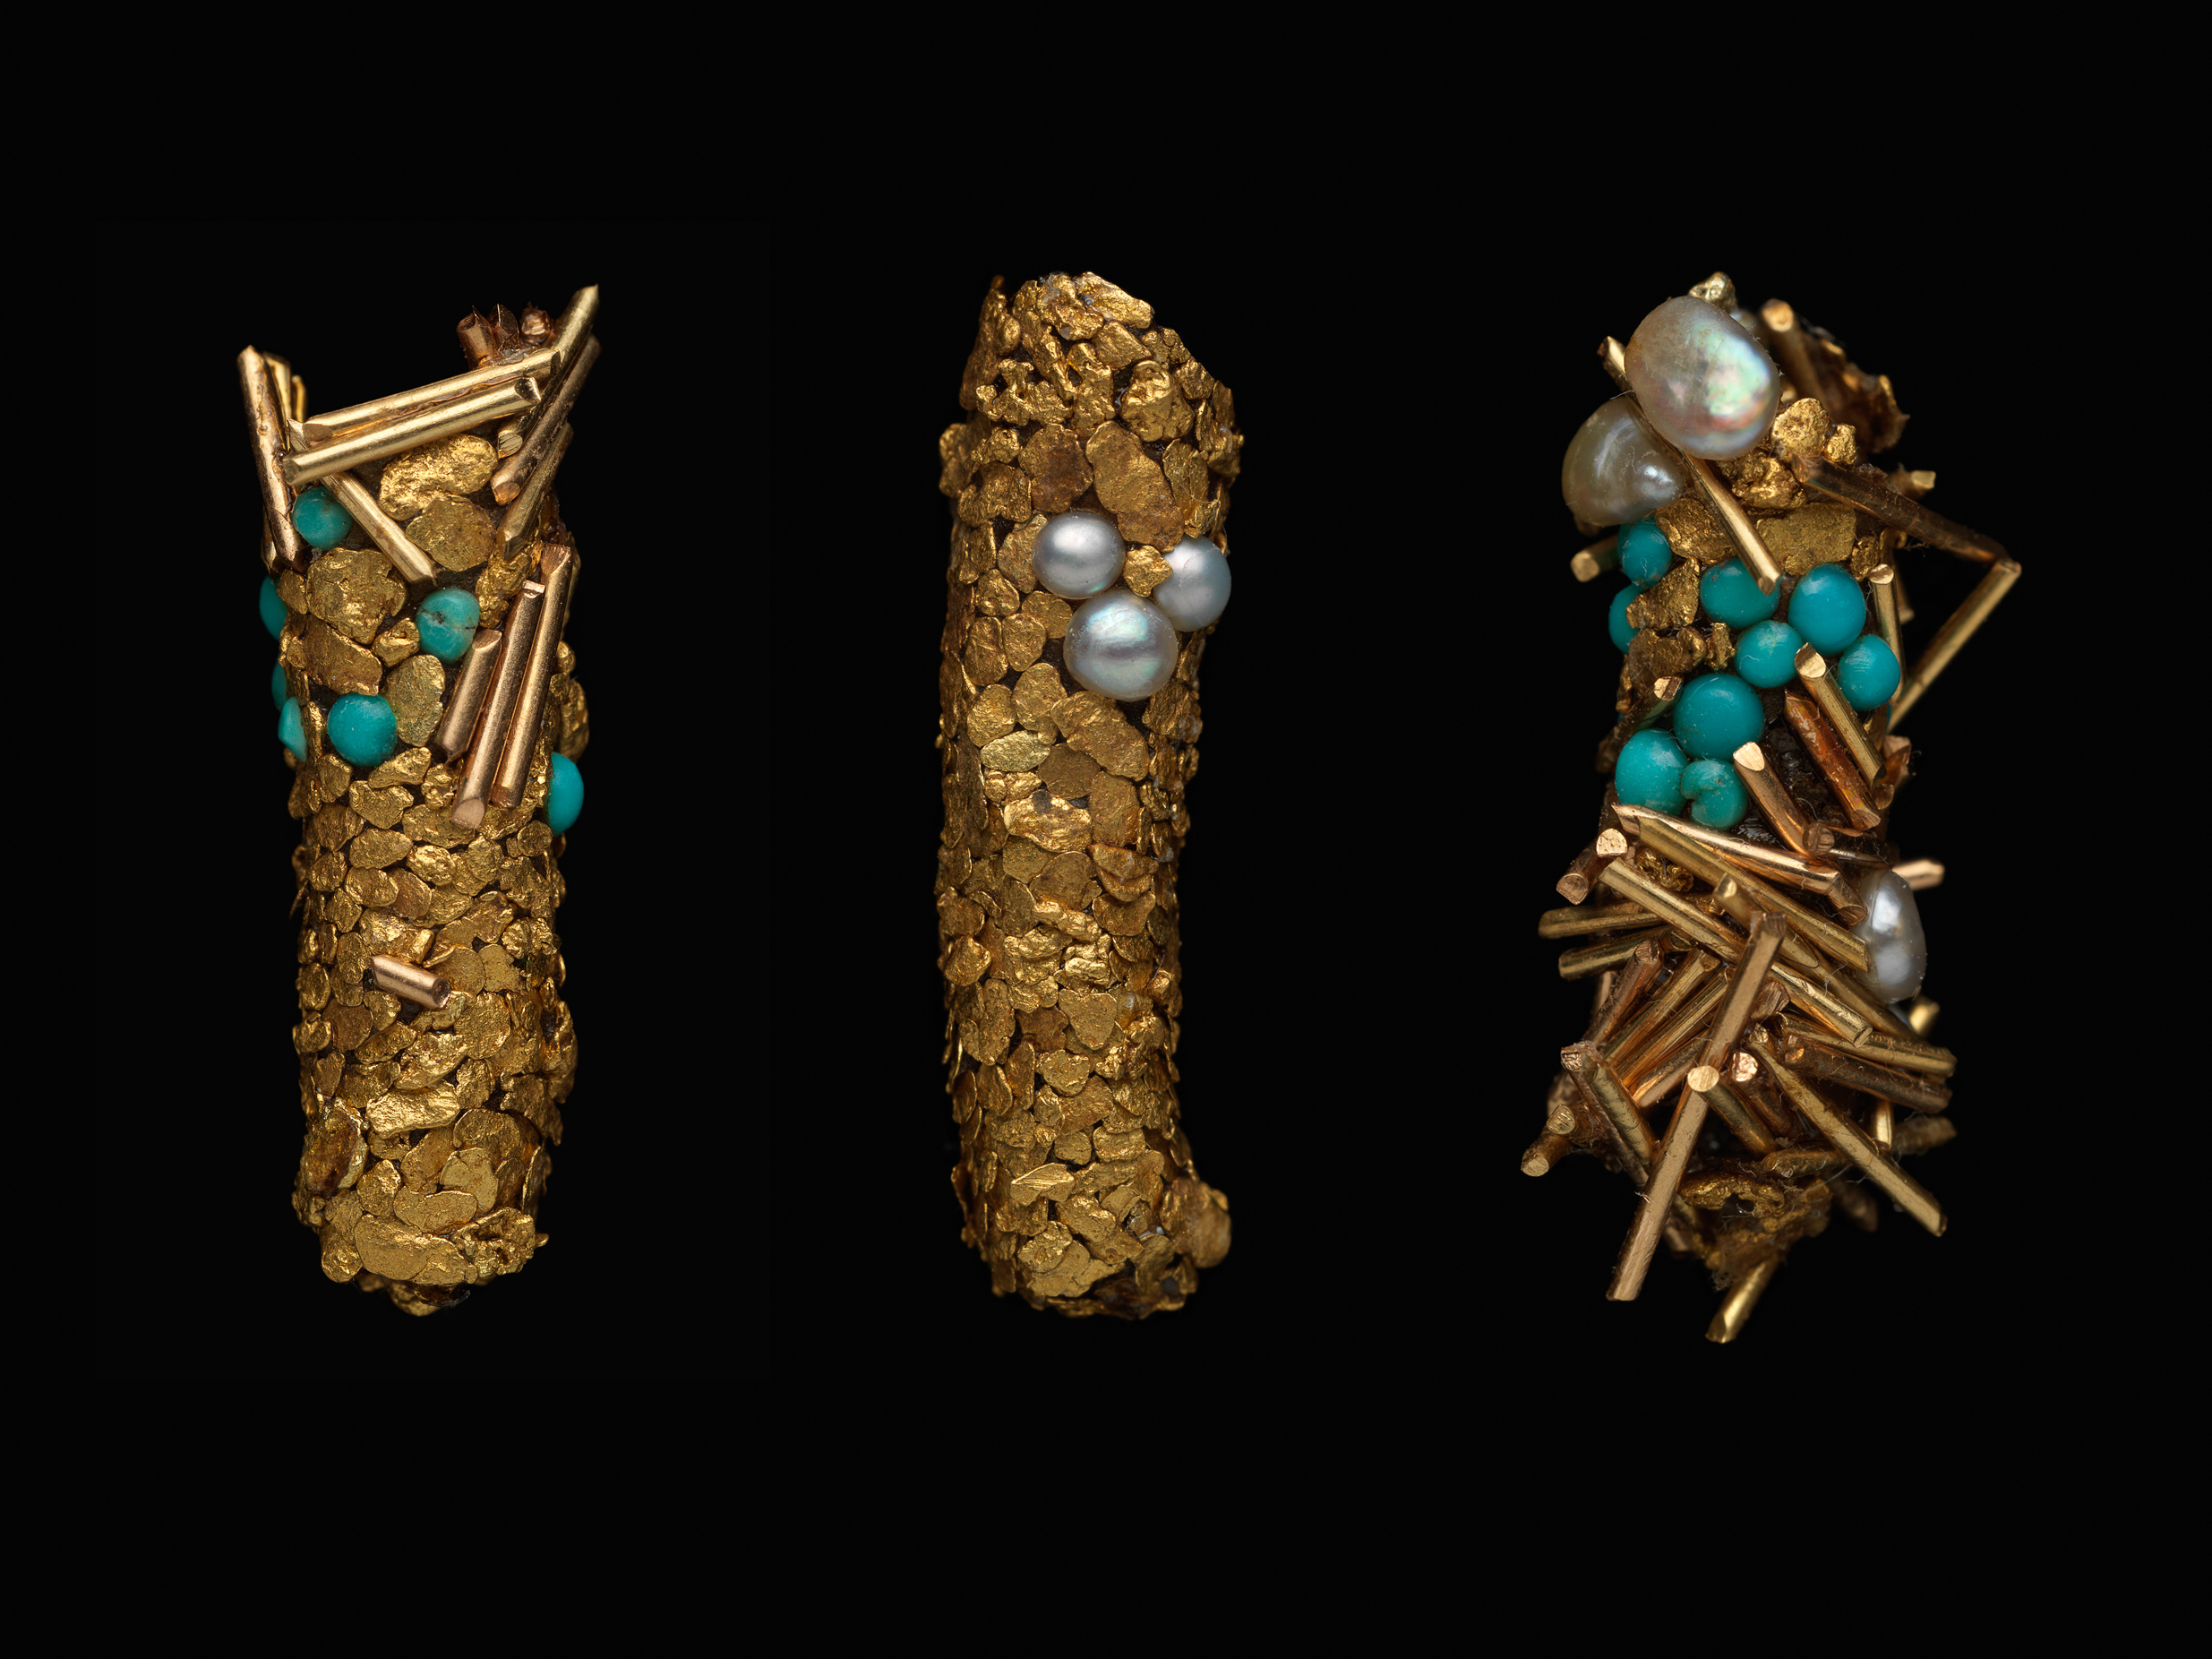 Étuis de Trichopteres (Caddisfly cases) 1980 - 2013  Hubert Duprat (Born 1957, Nérac, France; lives and works in southern France) Gold, pearls, turquoise